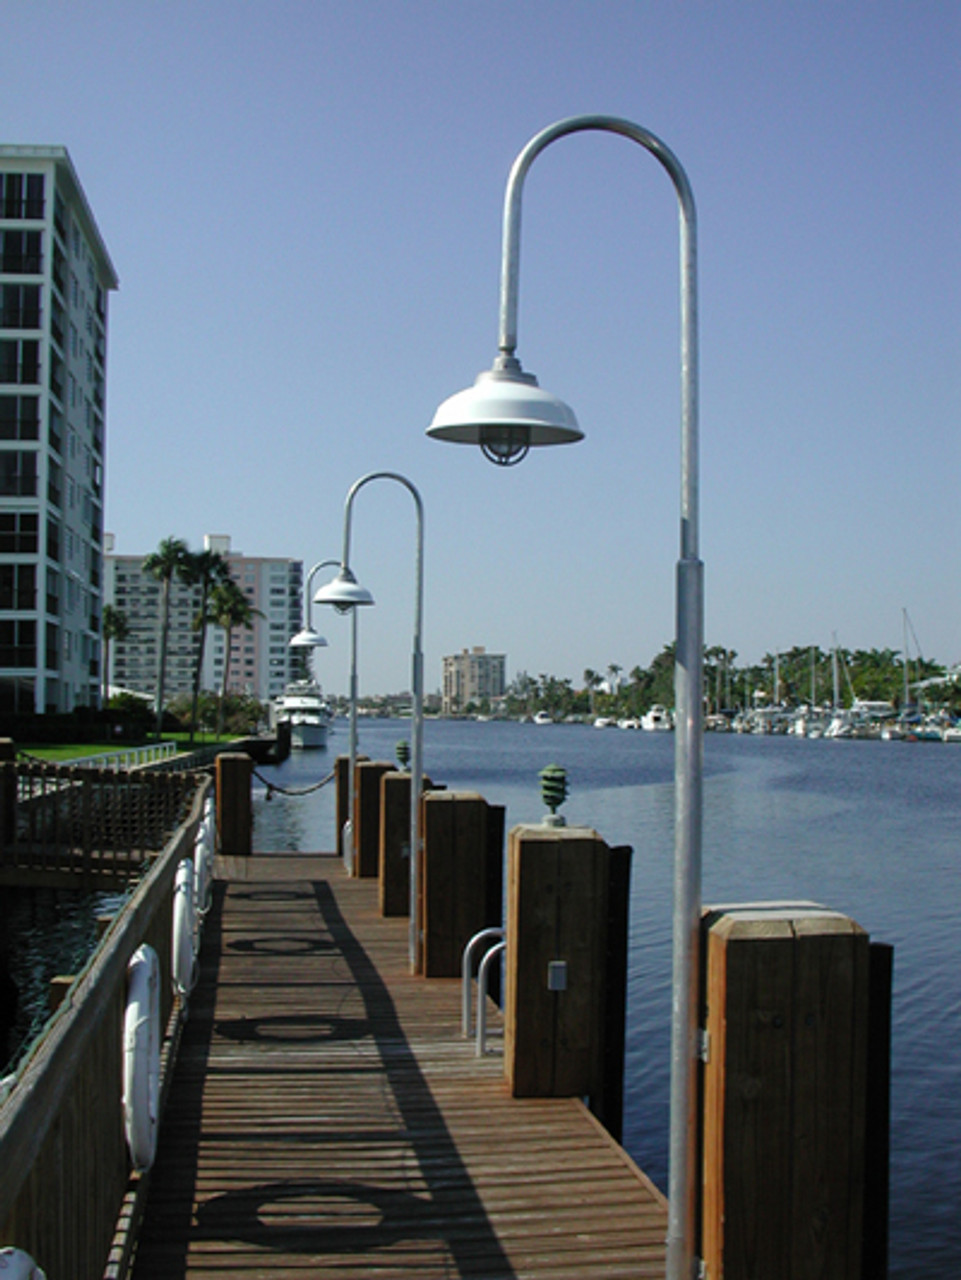 Aluminum Nautical Wharf Pole Dock Light w/Dome Shade-11 foot overall